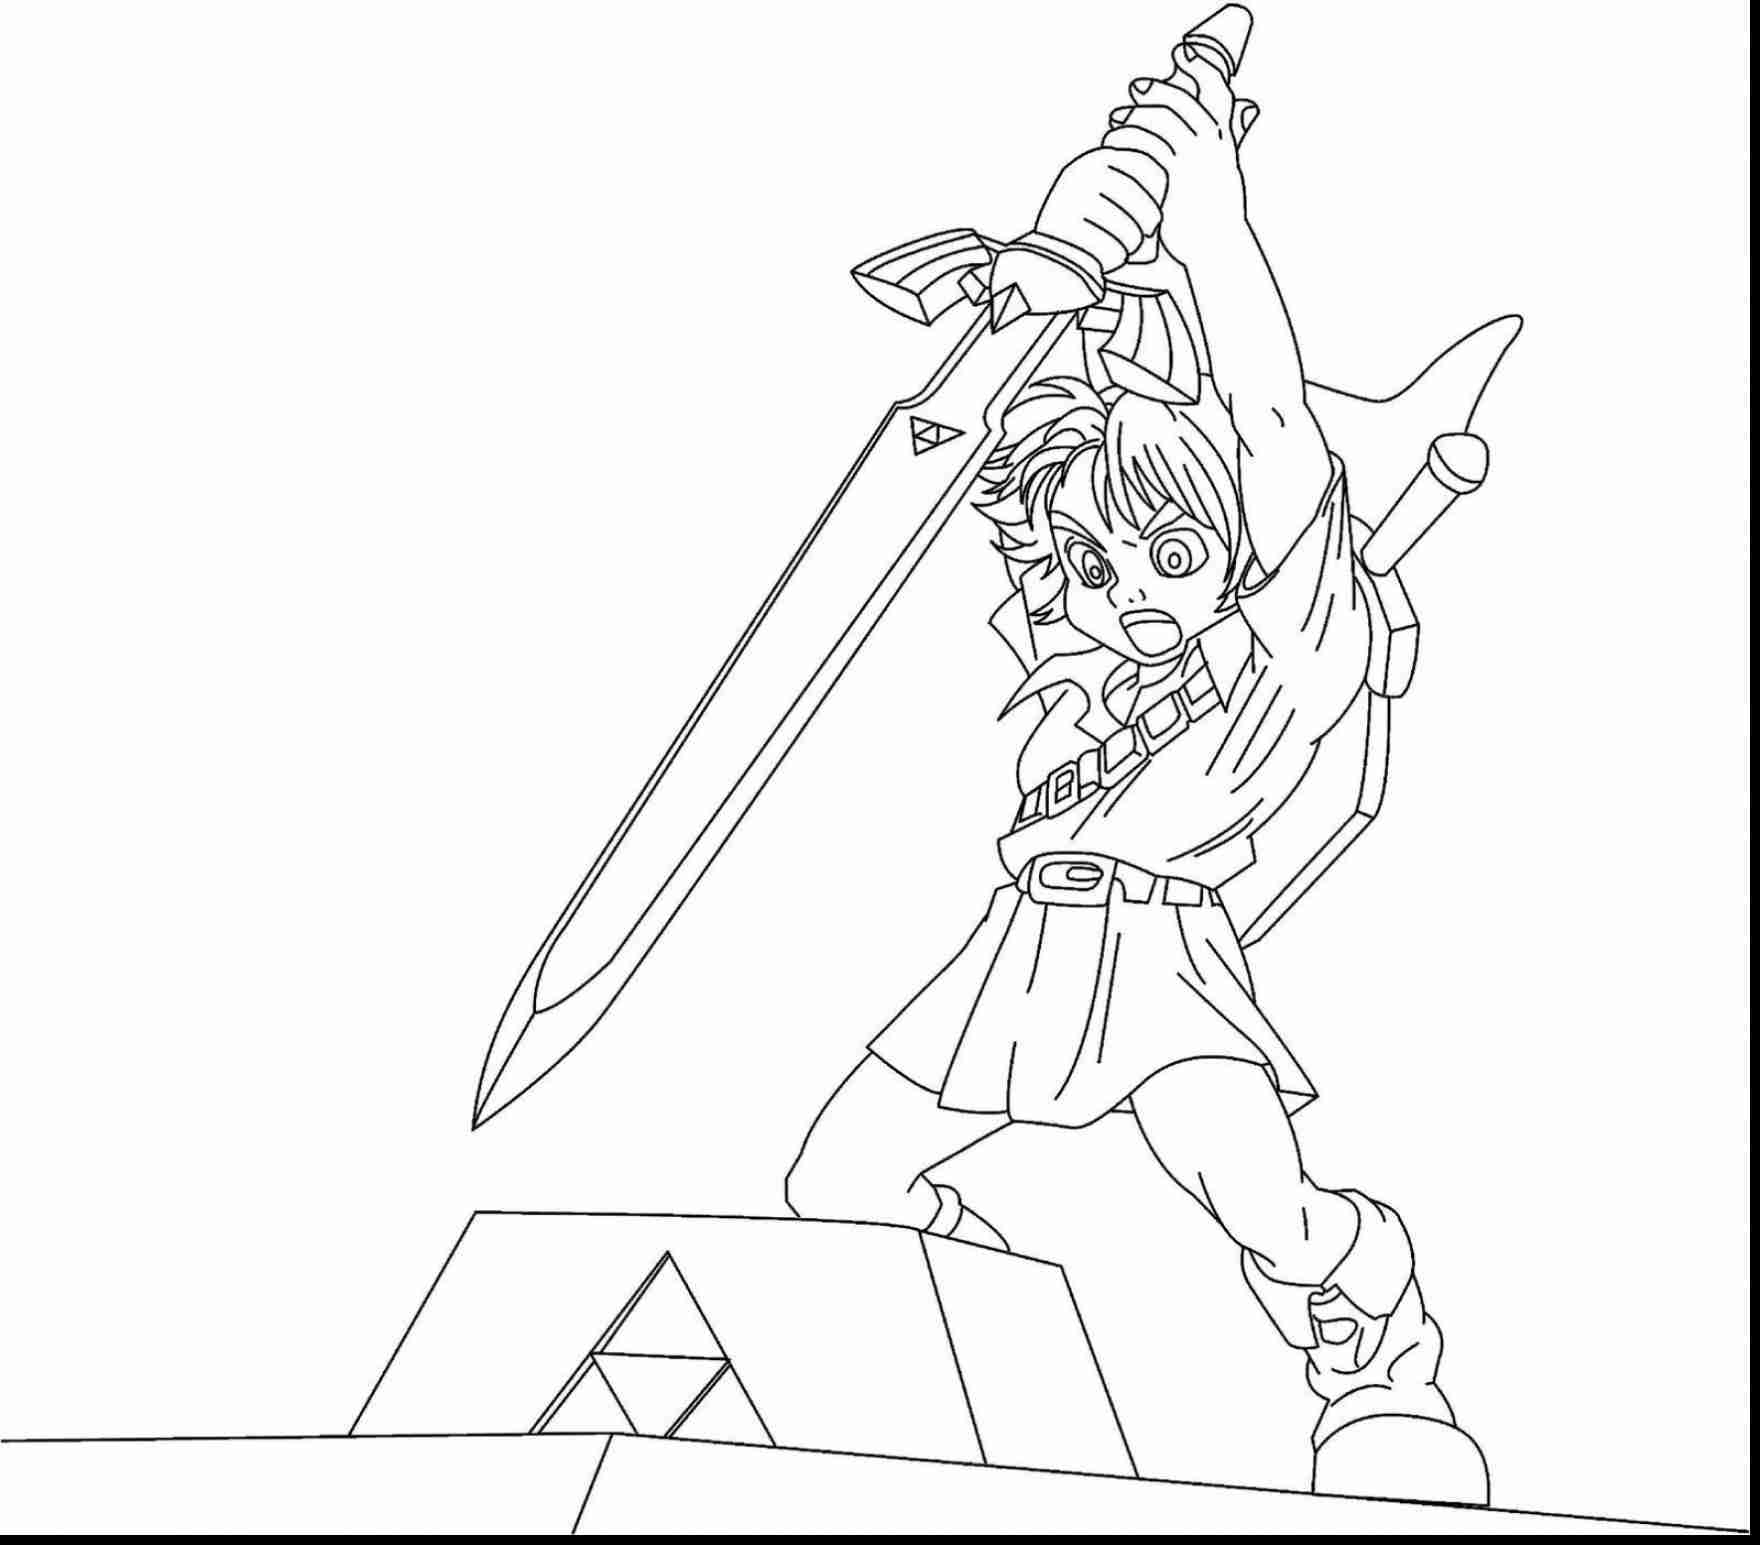 Legend Of Zelda Coloring Pages At Getdrawingscom Free For